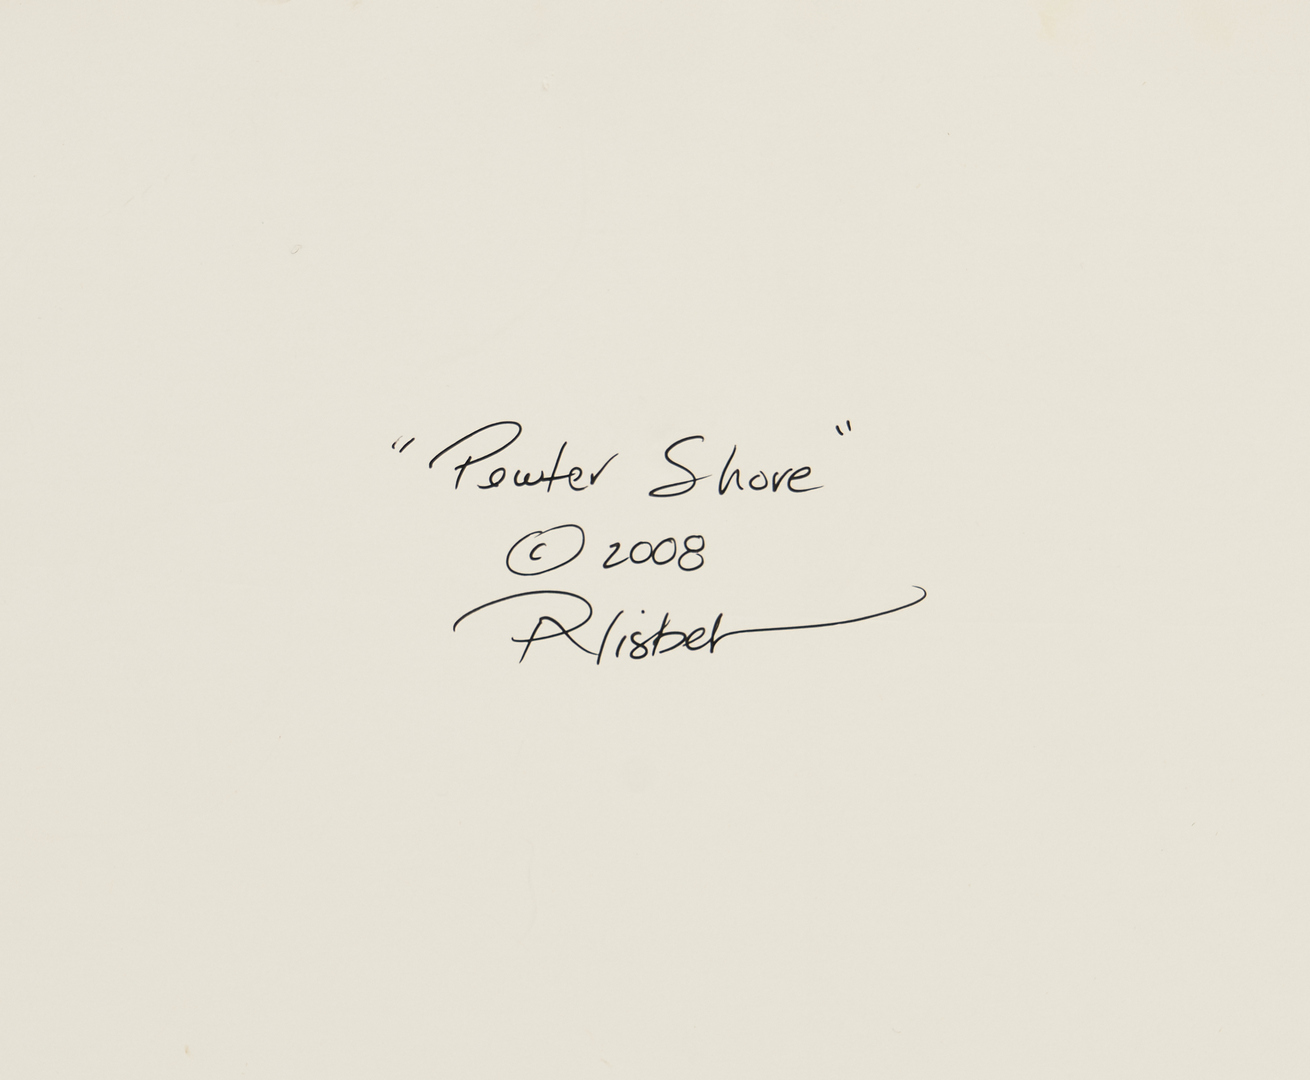 Lot 508: Peter A. Nisbet O/B, Pewter Shore